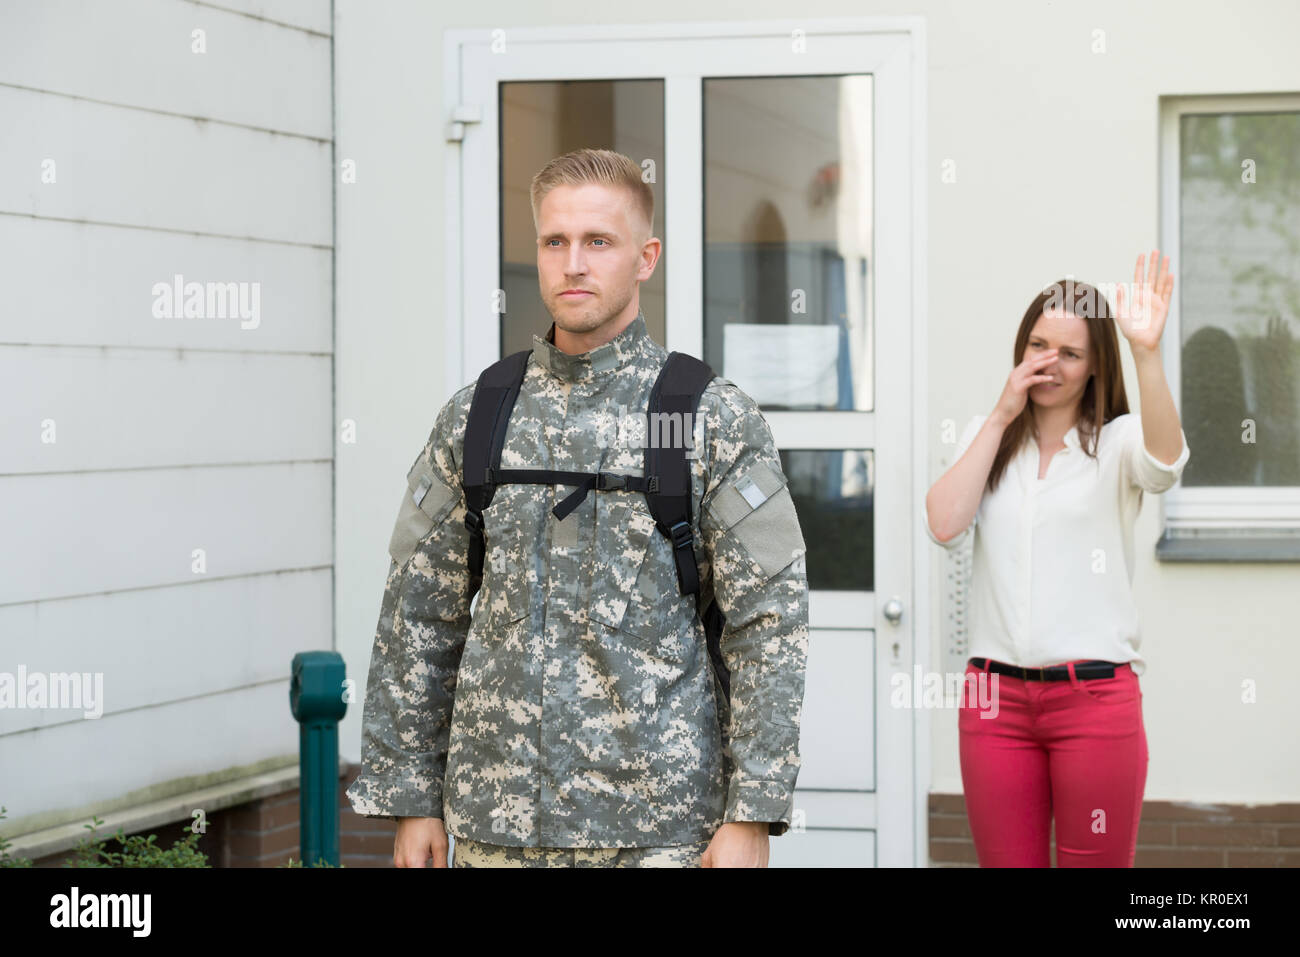 Unhappy Wife Waving Goodbye To Male Soldier - Stock Image